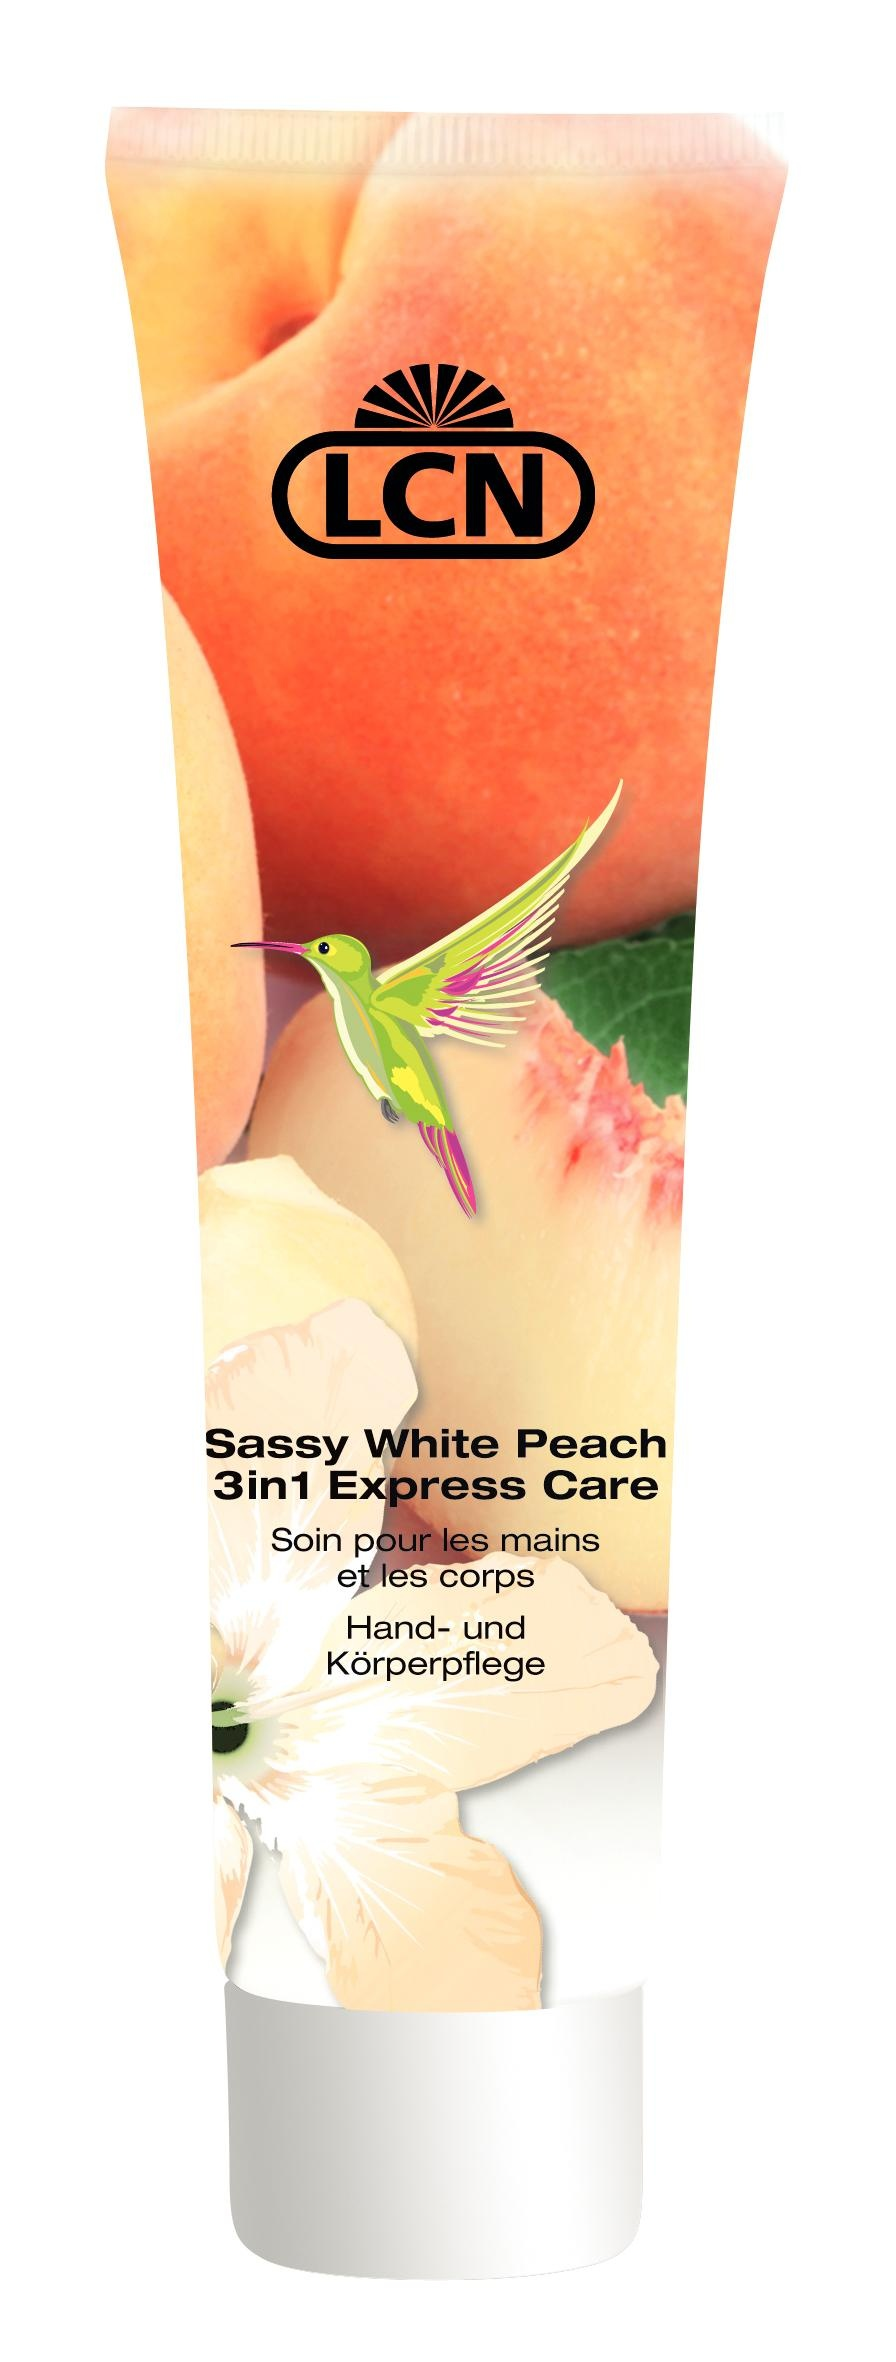 3In1 Express Care-Sassy White Peach, 100ml